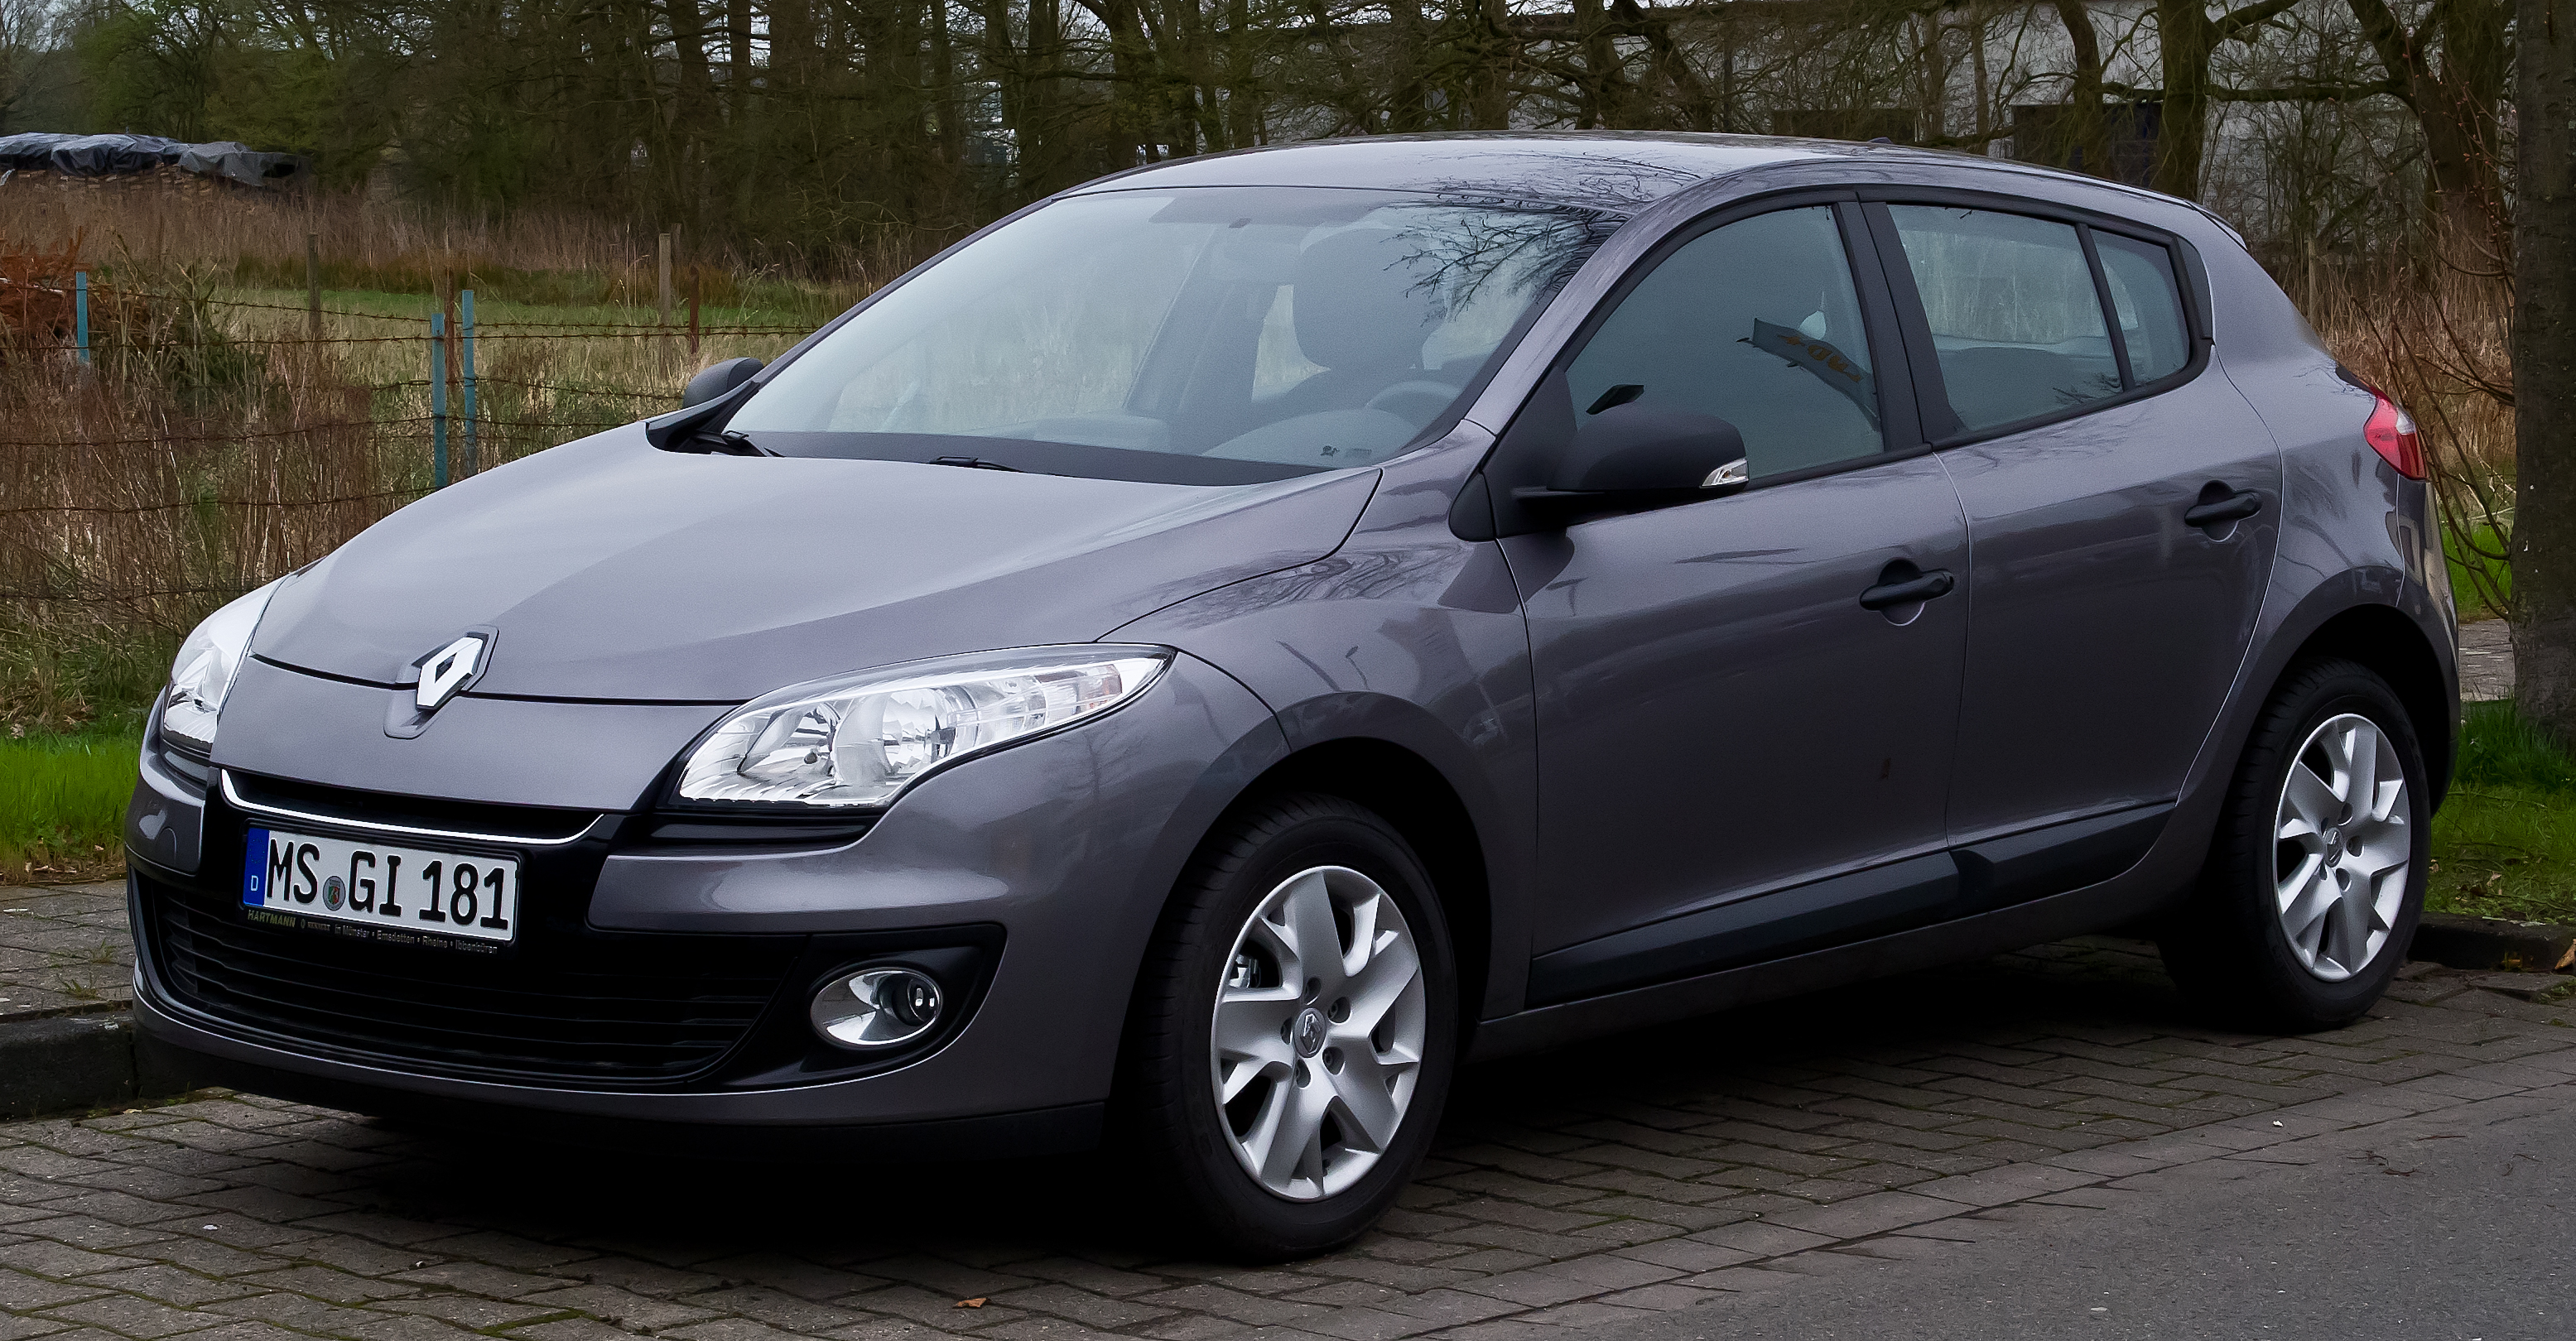 2013 renault megane iii pictures information and specs auto. Black Bedroom Furniture Sets. Home Design Ideas